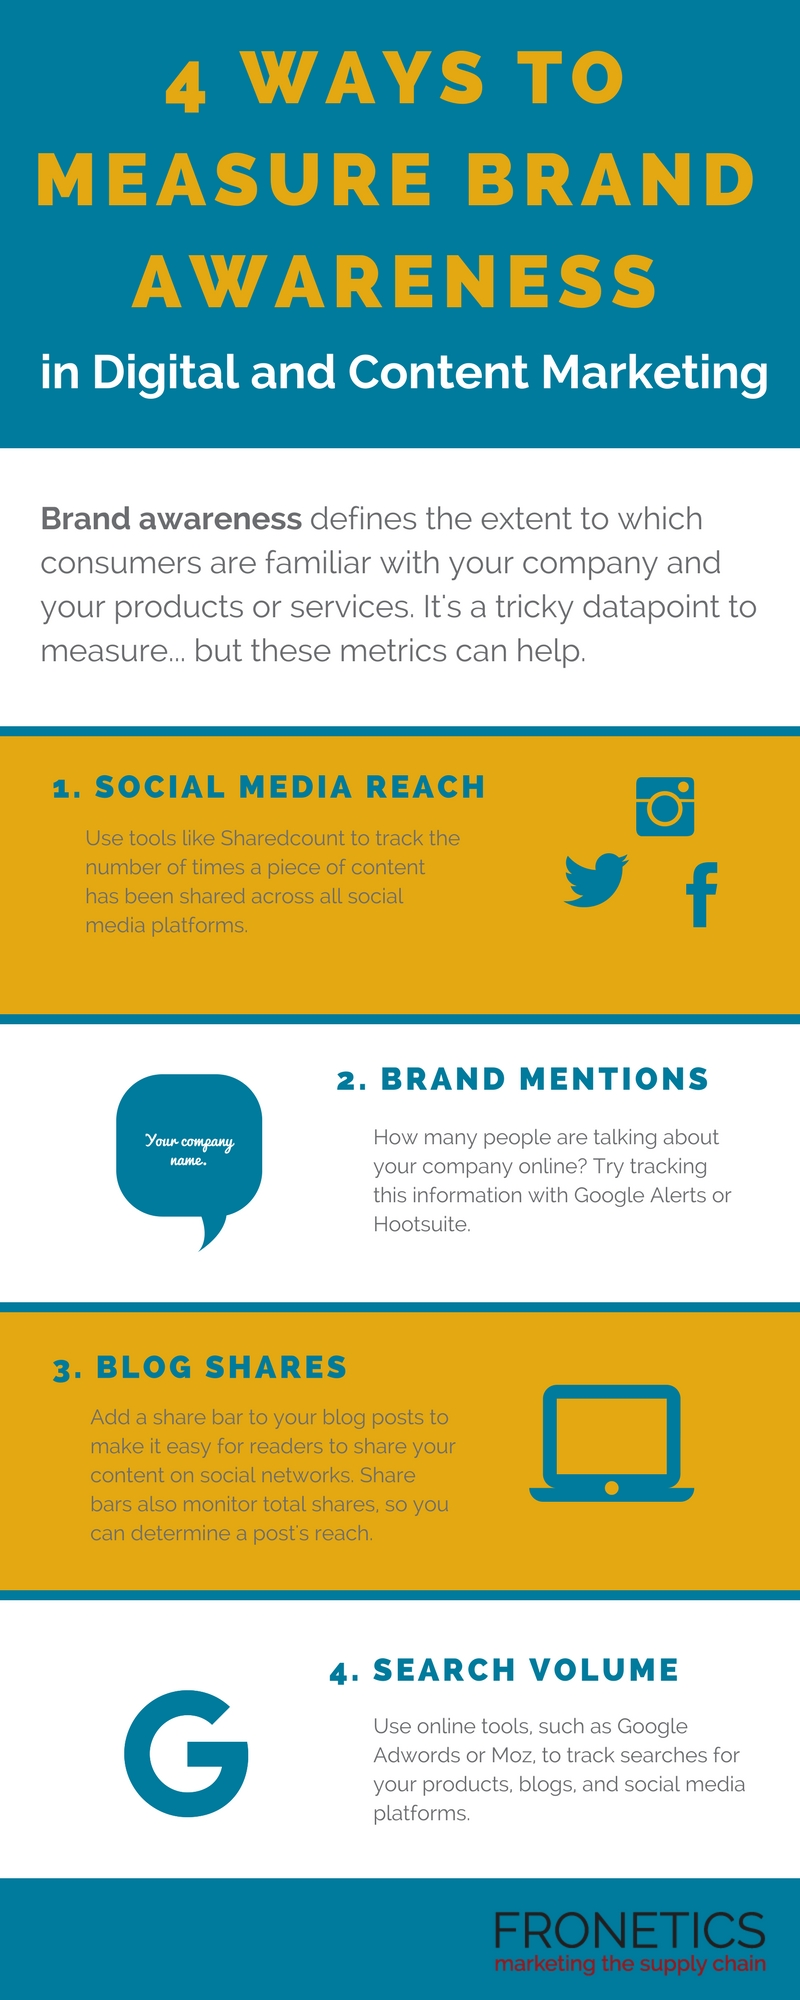 4 ways to measure brand awareness